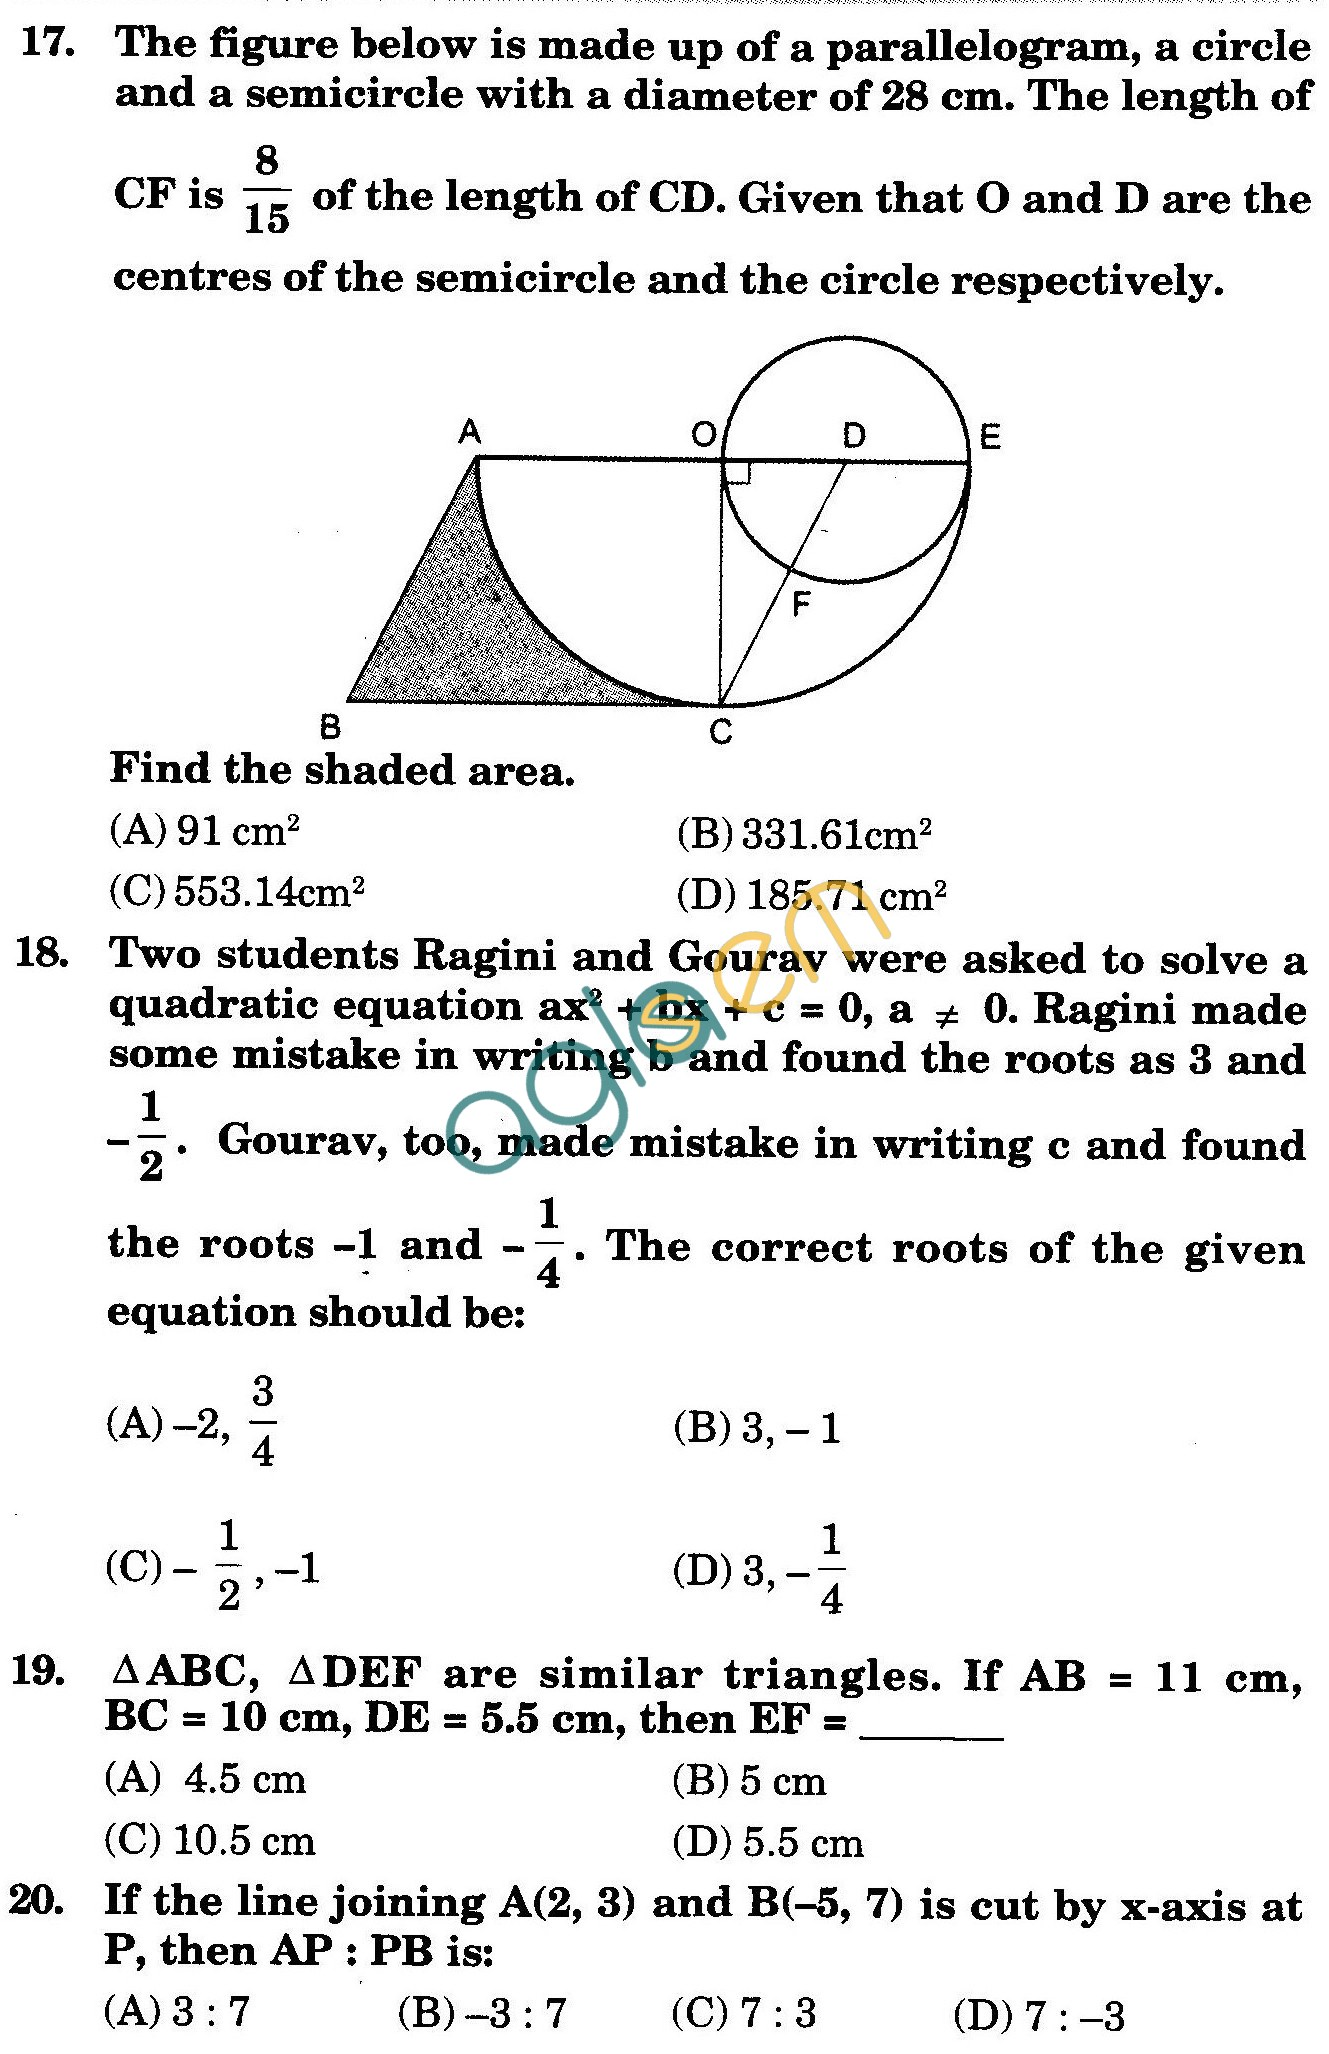 NSTSE 2010: Class X Question Paper with Answers - Mathematics